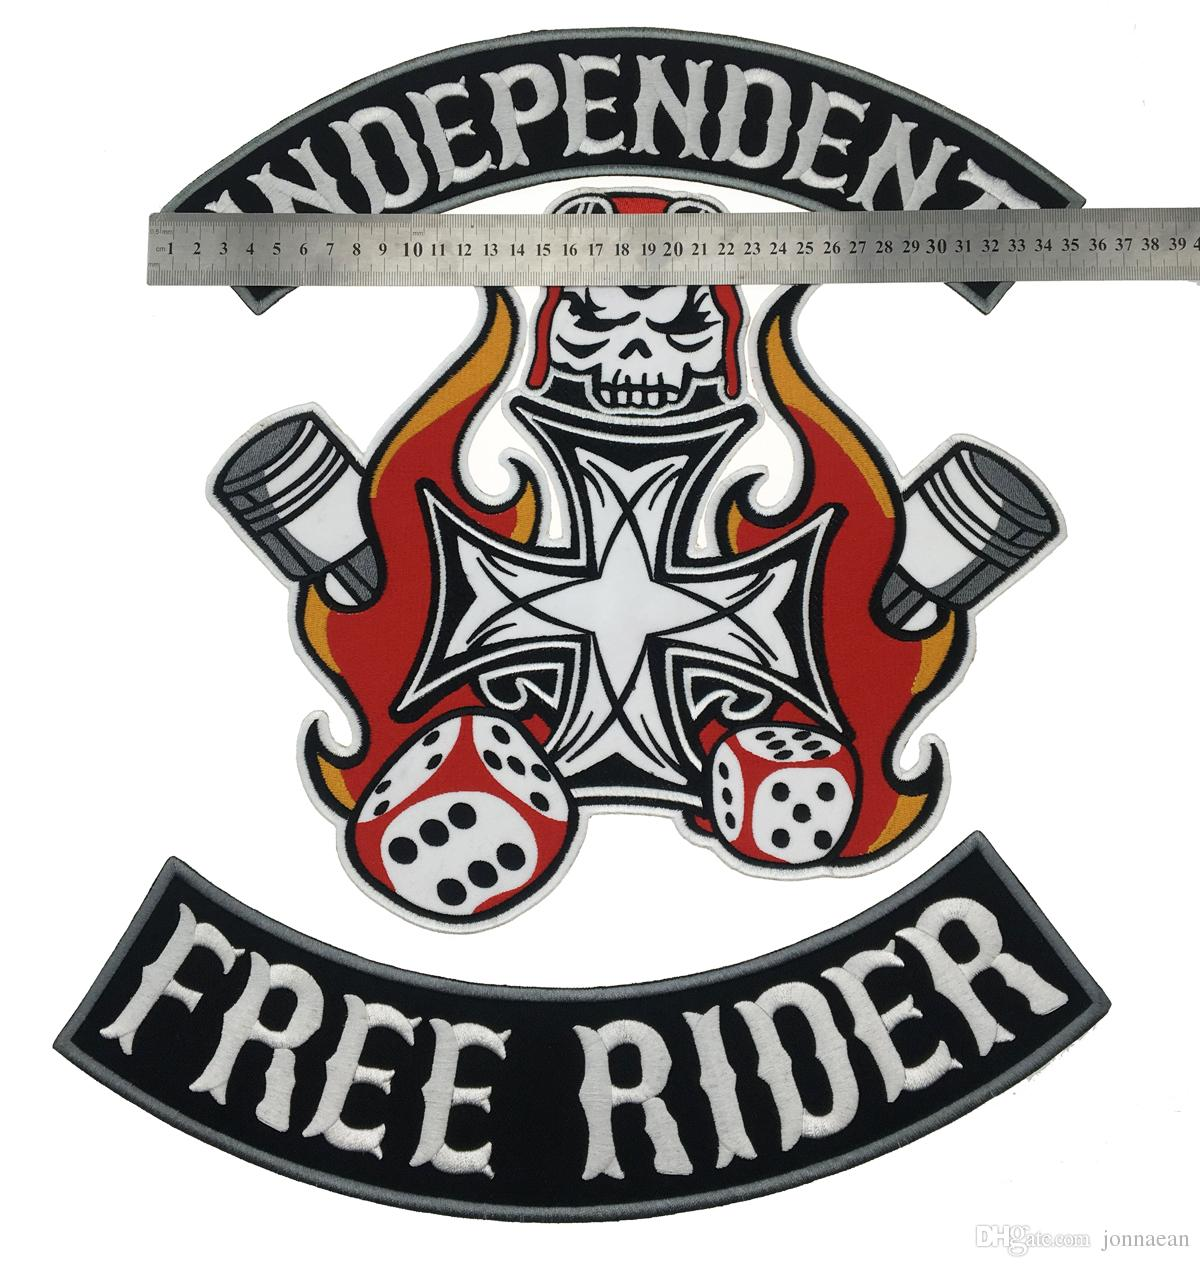 INDEPENDENT FREE RIDER MC Iron On Embroidered Patch Motorcycle Biker Large Full Back Size Patch for Jacket Vest Badge